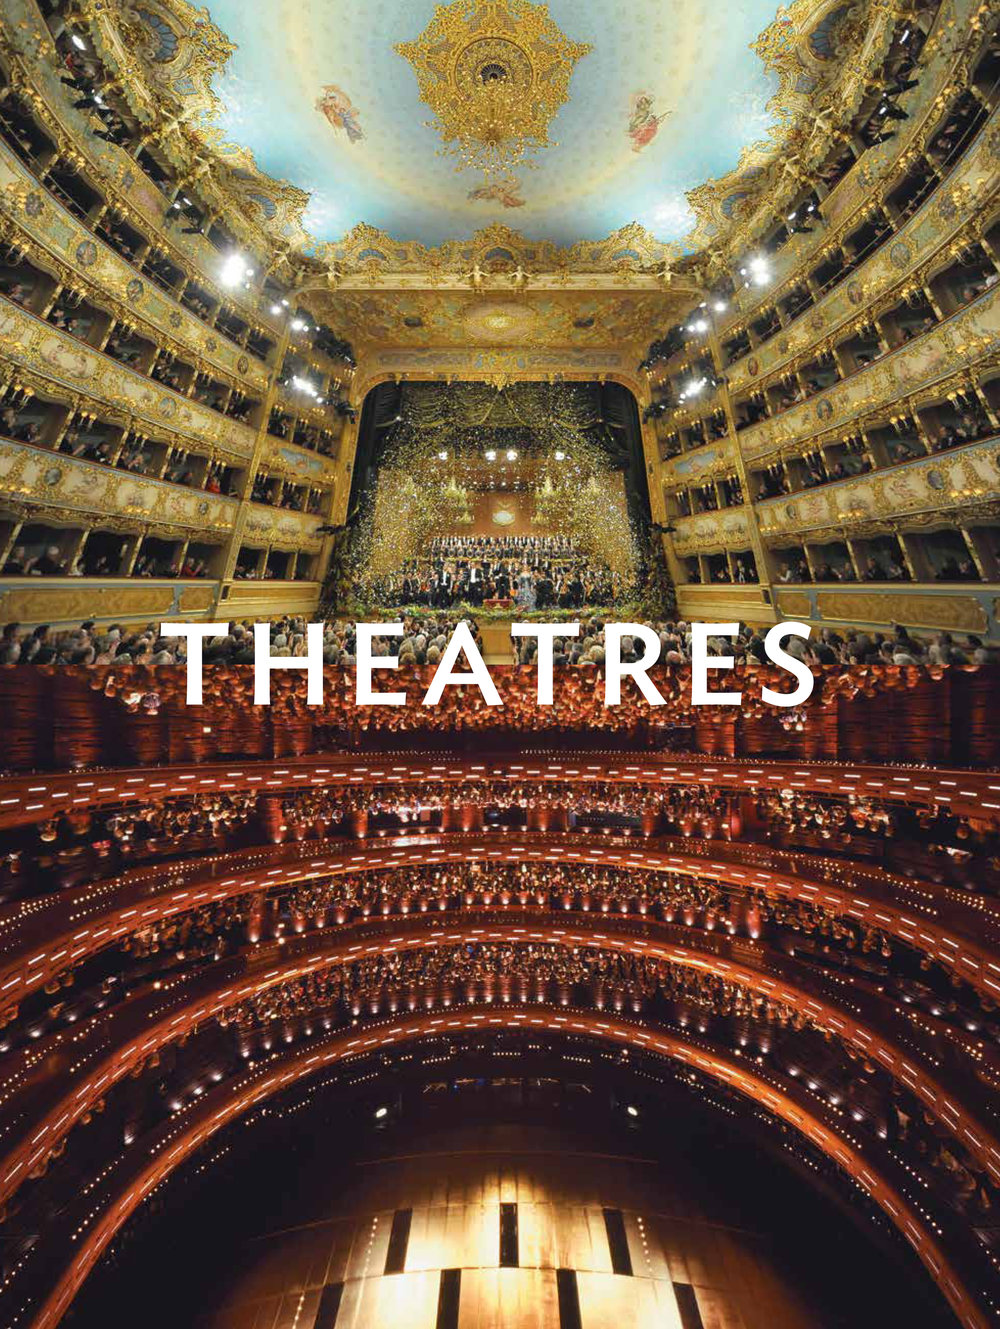 9781909399112 Theatres cover.jpg